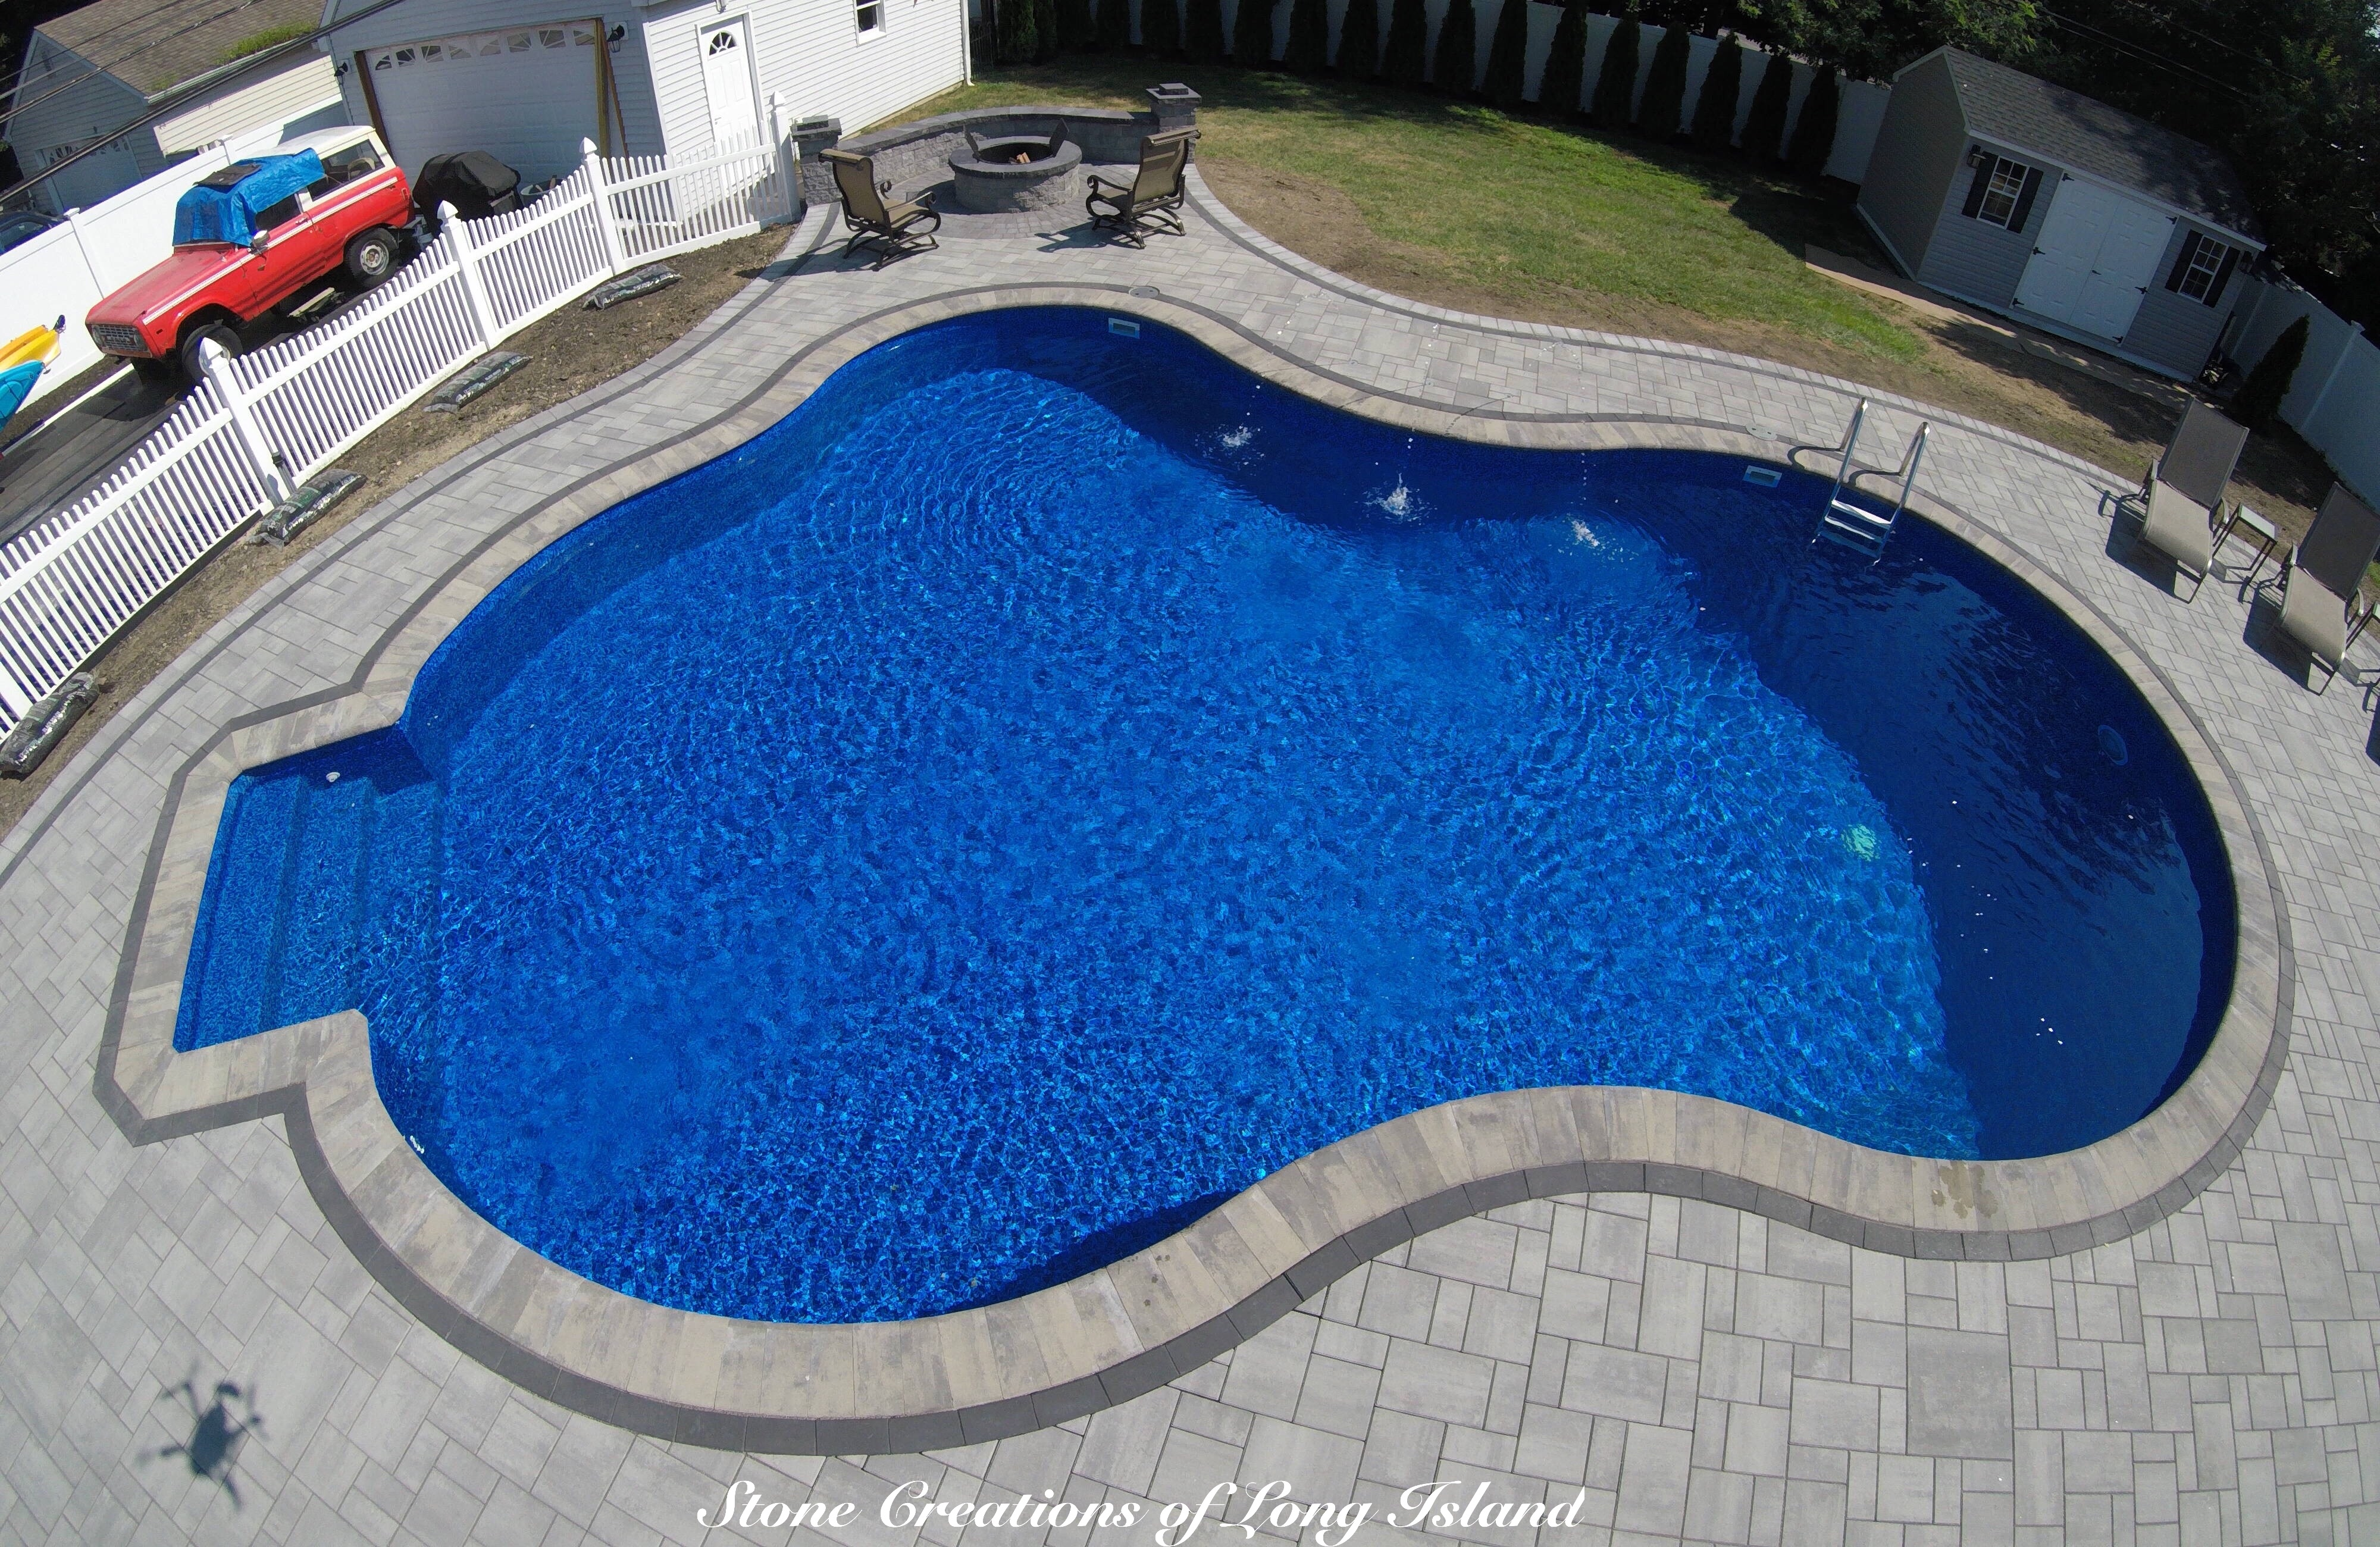 Cambridge Paver Pool Patio - East Islip, NY 11730